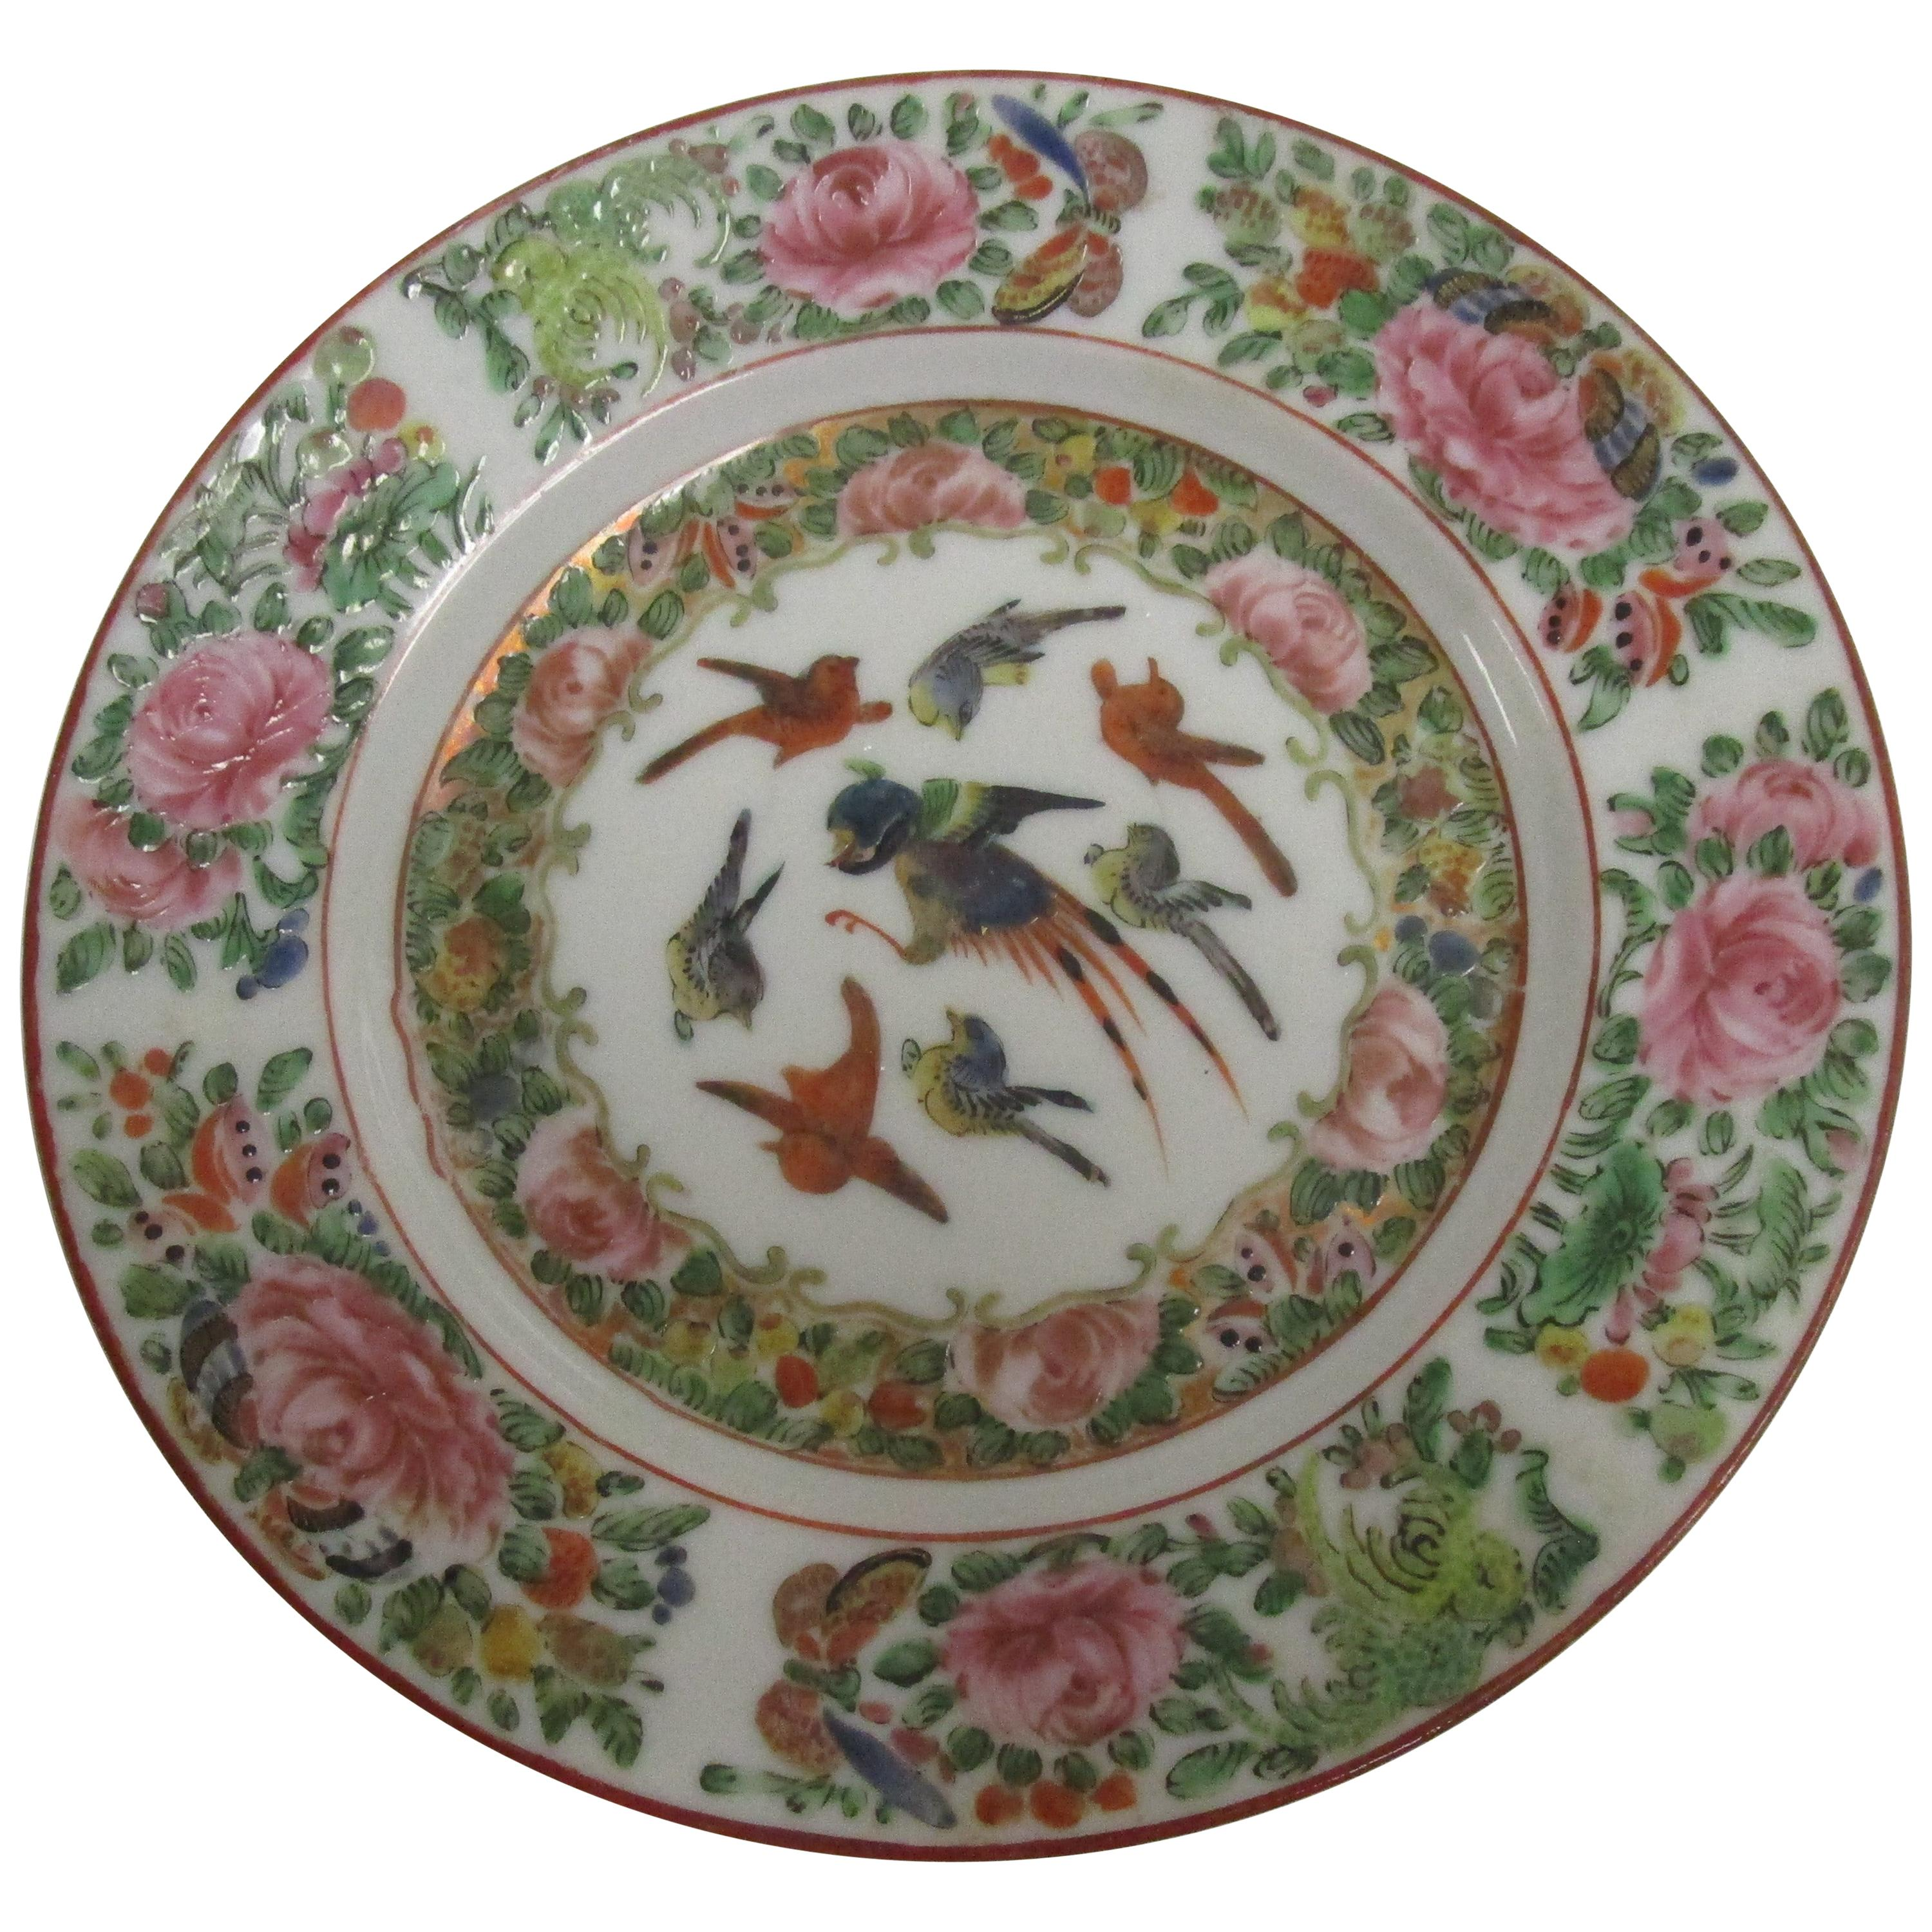 Chinese Export Famille Rose, circa 1820